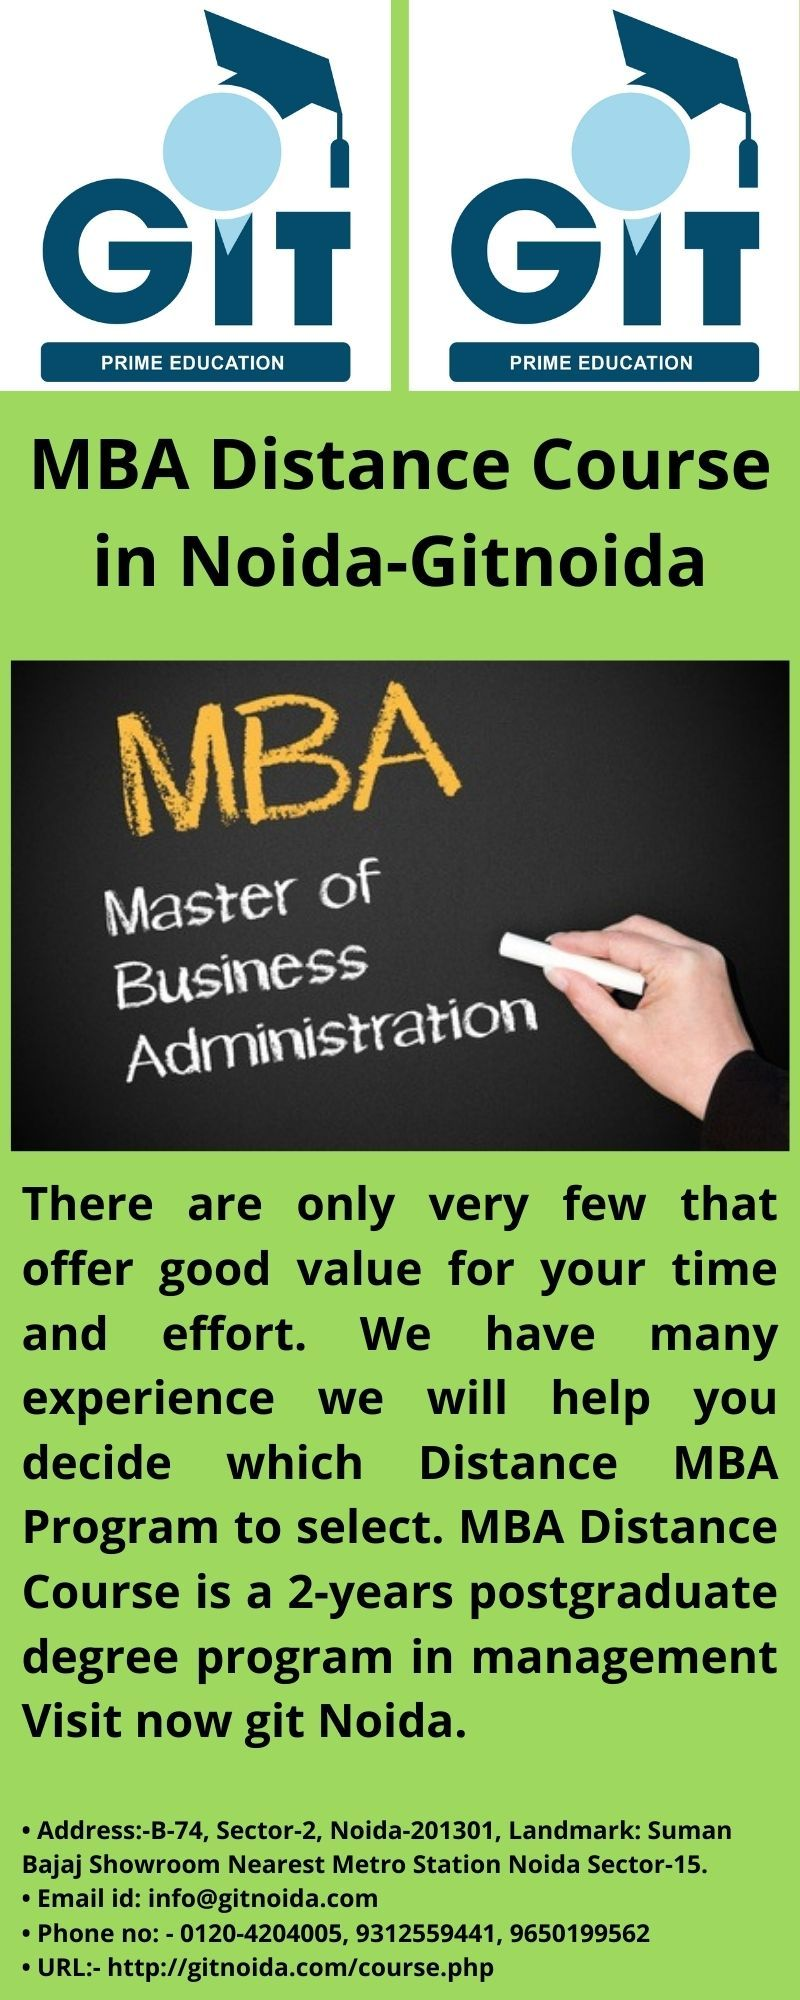 Recent articles subscribe © 2020 the manifest MBA Distance Course in Noida-Gitnoida in 2021 | Digital ...